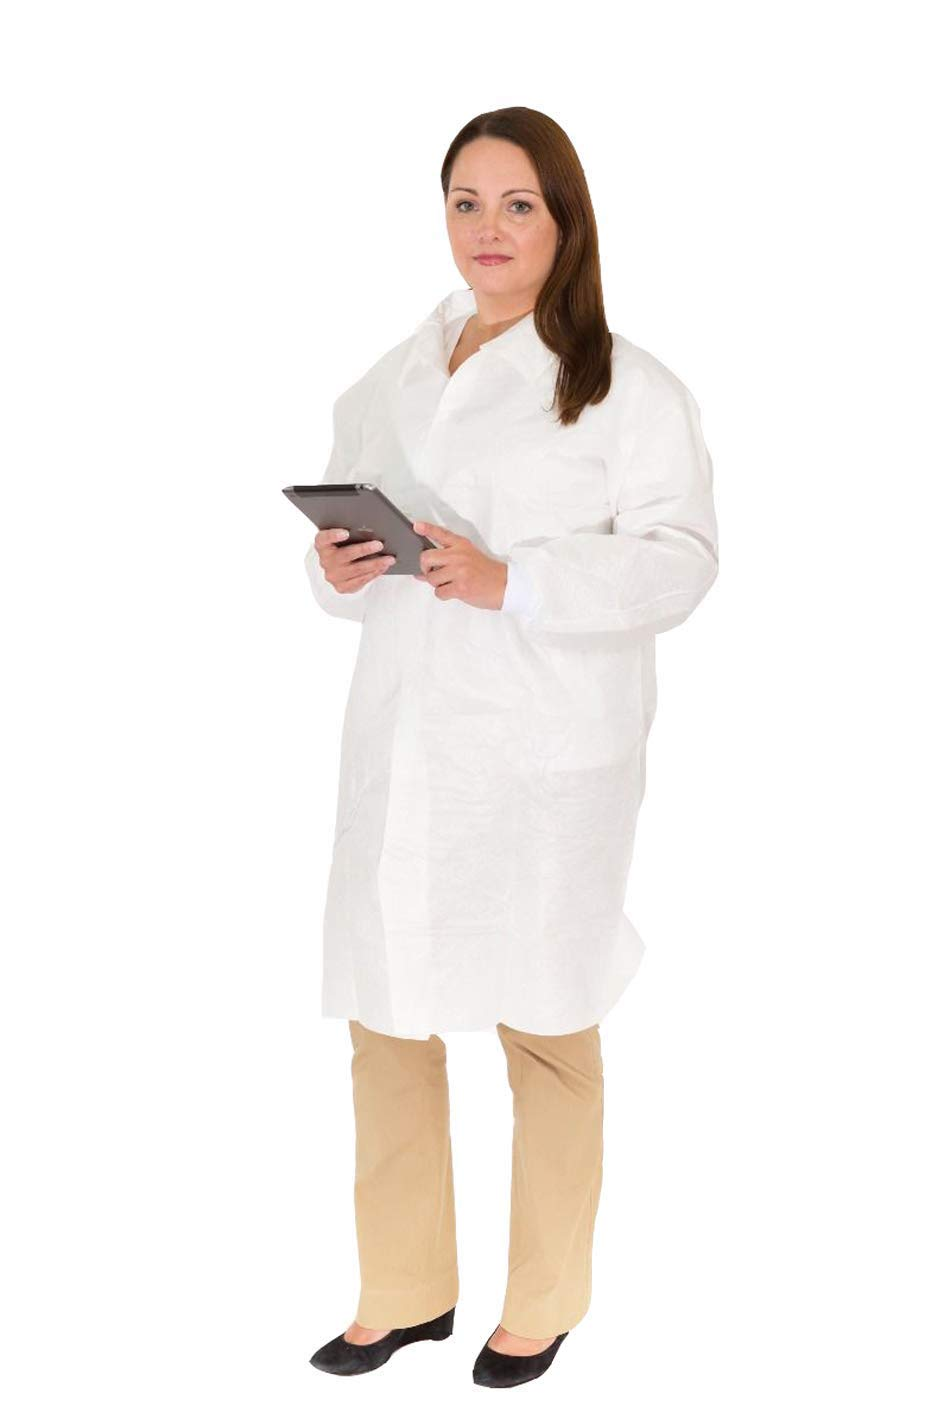 Body Filter 95+ Lightweight Disposable Lab Coats (No Pockets) | Breathable Cool Material -Extra Durable and Comfortable for Professional Laboratory + Medical Use (Case of 50) (Size: 2XL)